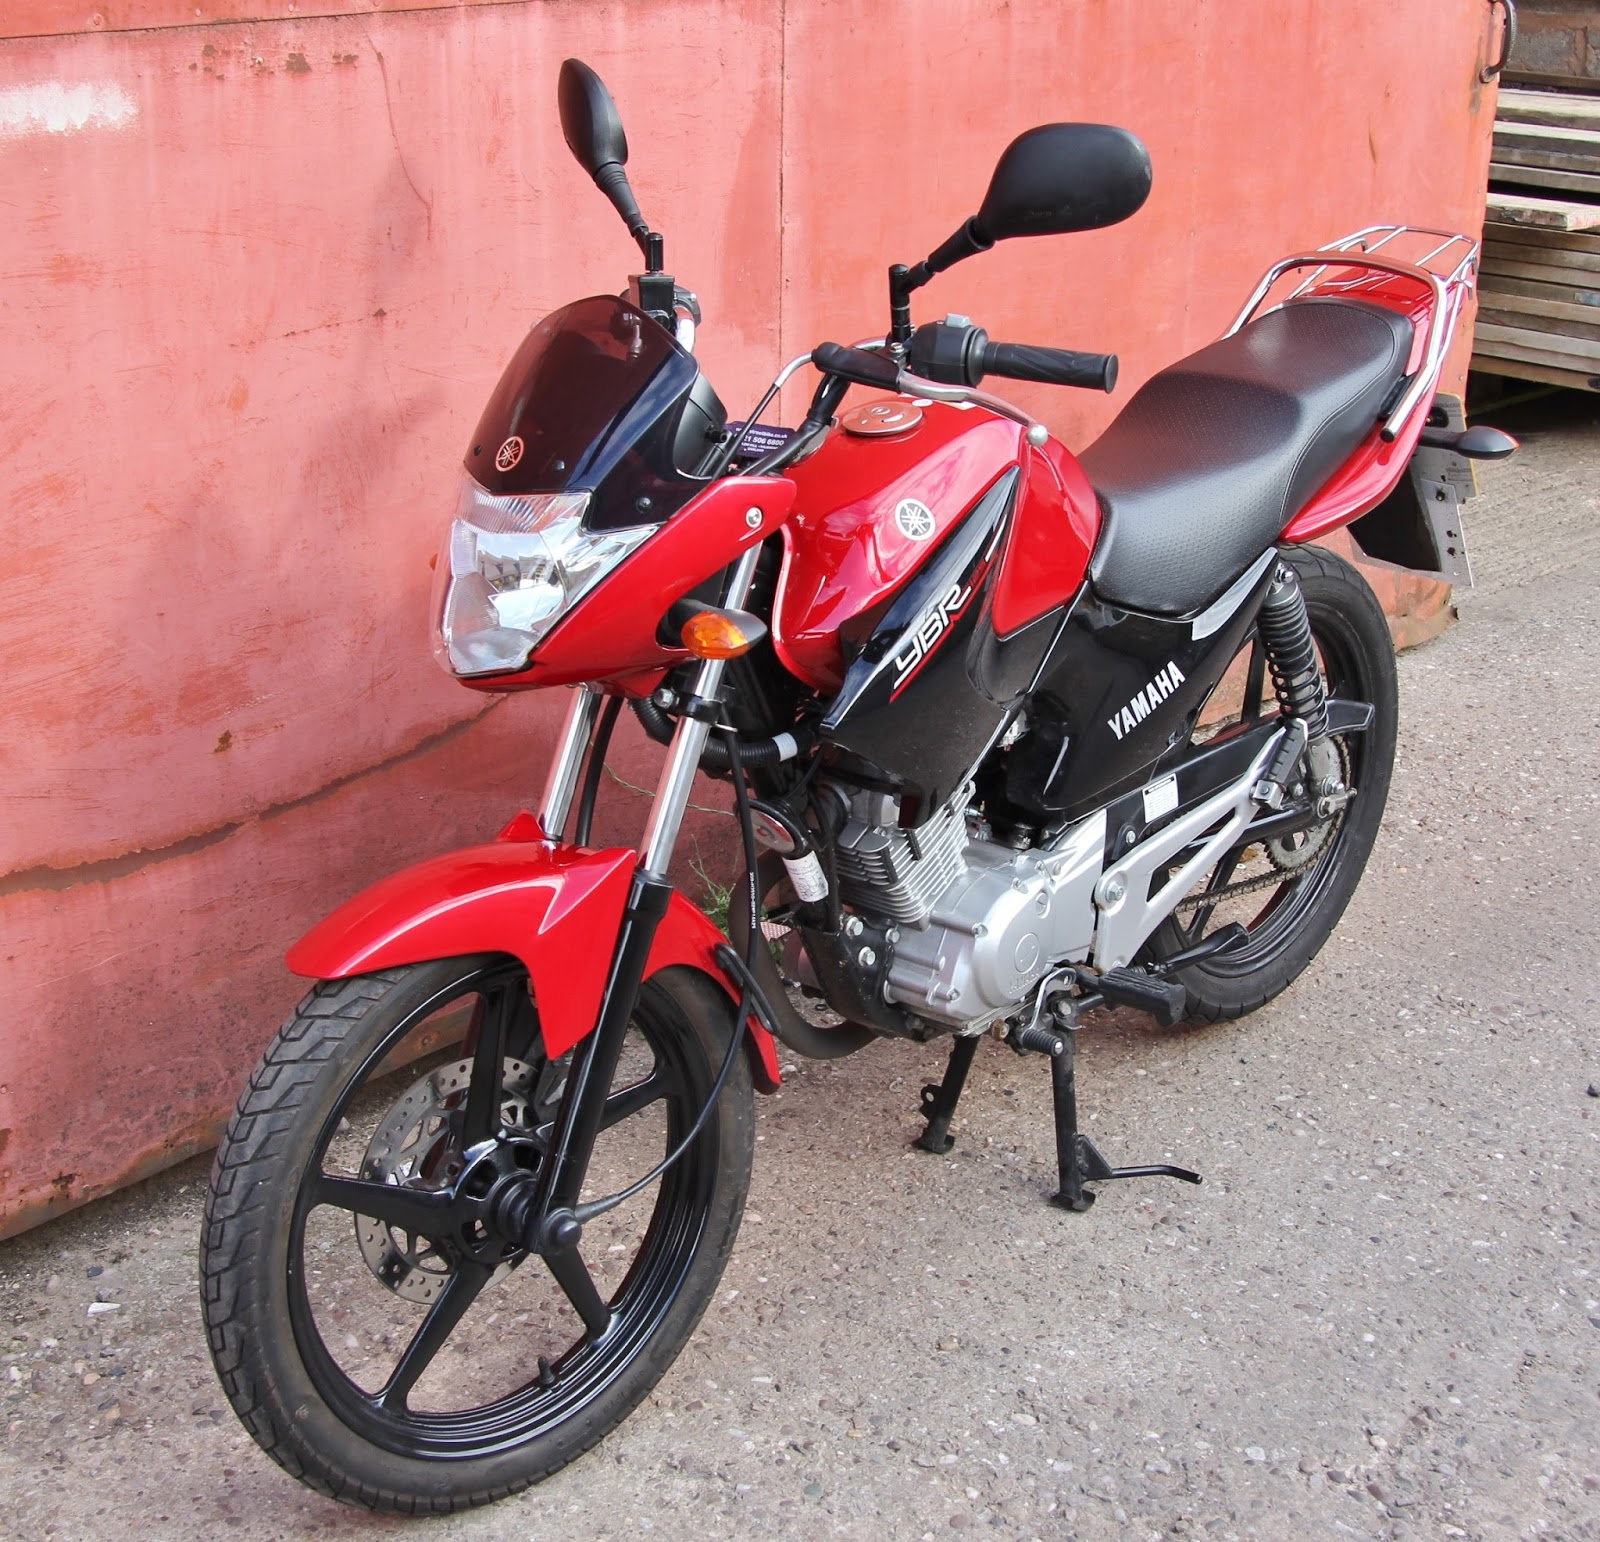 yamaha ybr 125 owner blog yamaha ybr 125 2014 1060 miles only for sale uk. Black Bedroom Furniture Sets. Home Design Ideas